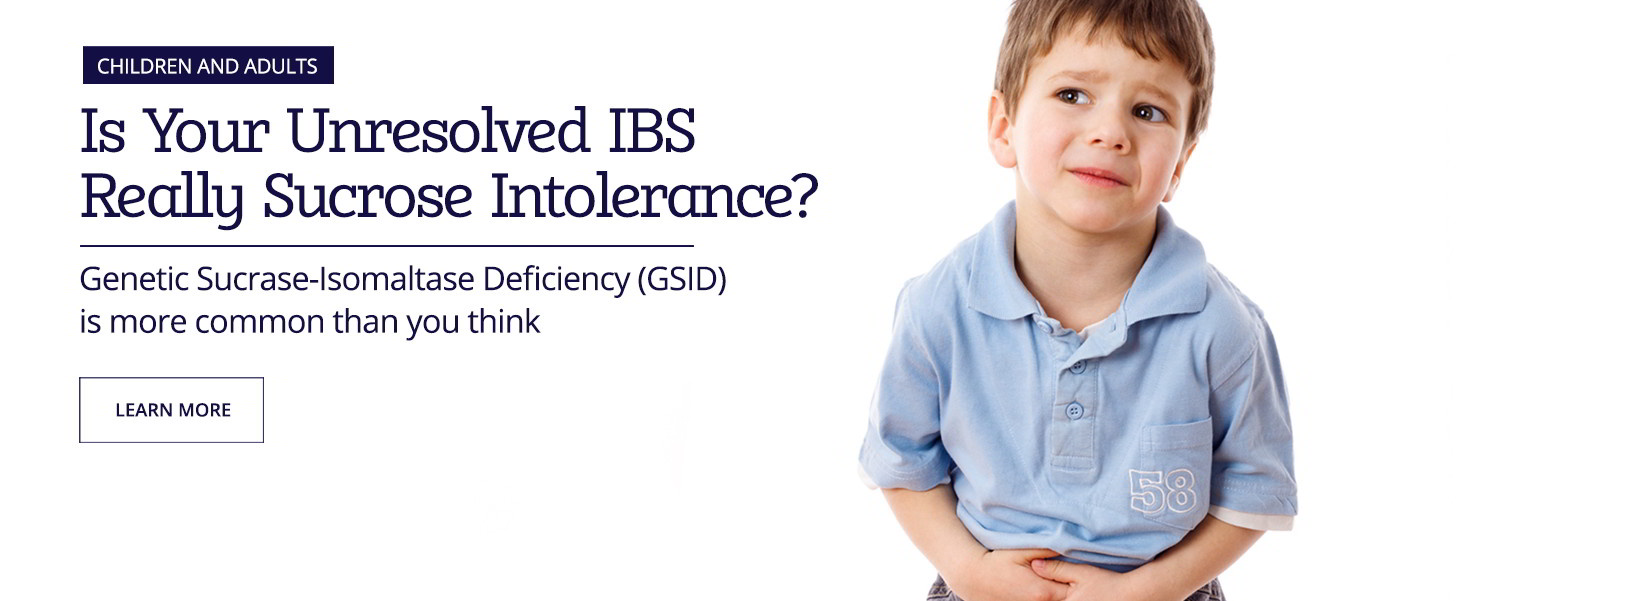 Is Your Unresolved IBS Really Sucrose Intolerance?